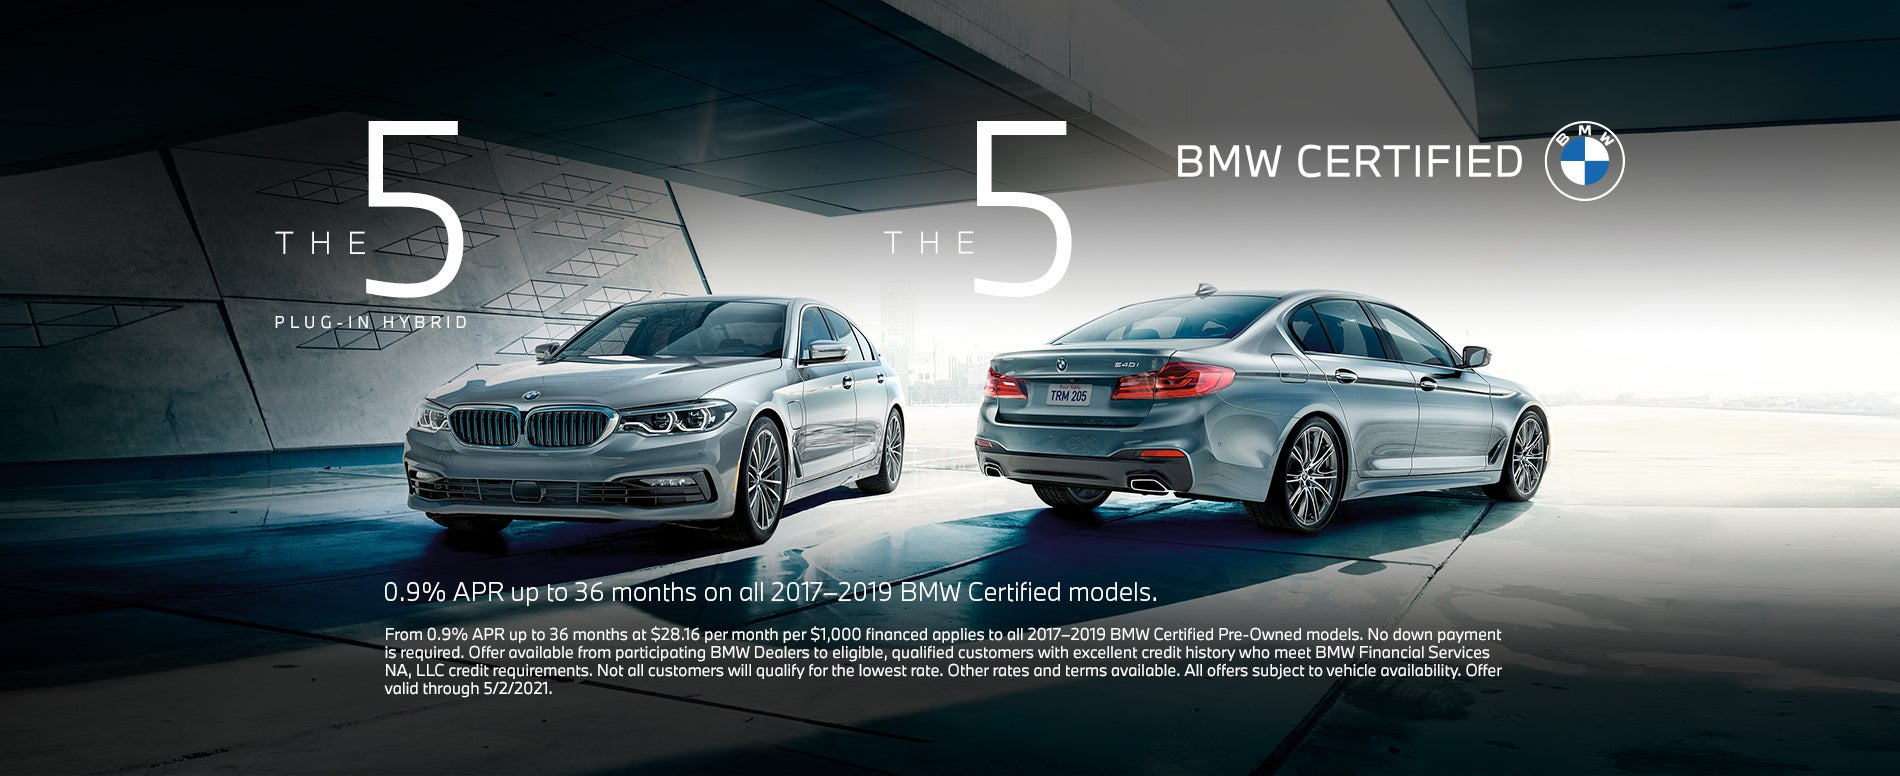 New Pre Owned Bmw Cars Palm Springs Ca Bmw Dealership Near Me